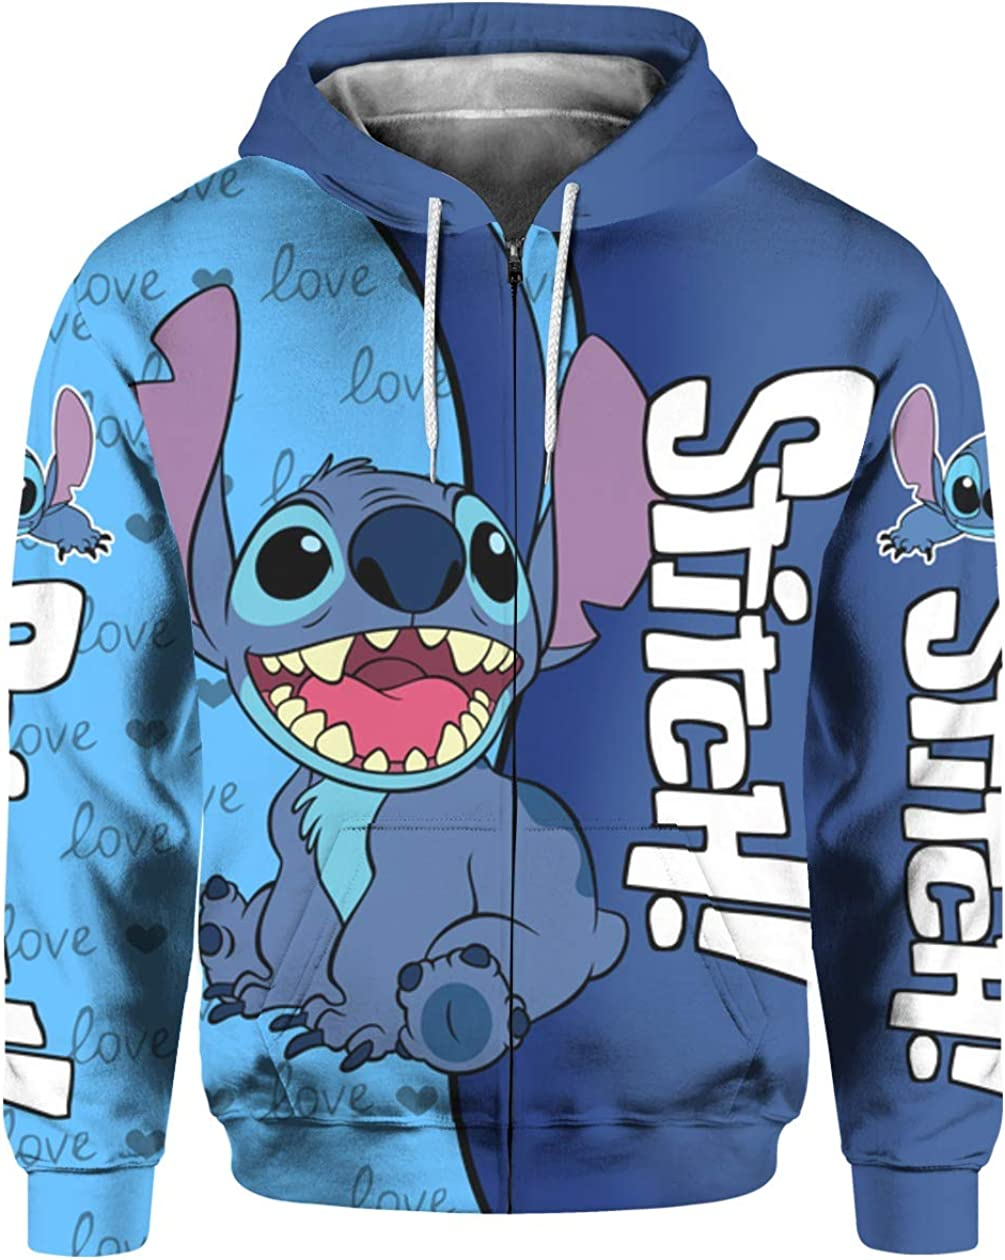 Stitch Blue 3D All Over Sublimation Printing Shirt